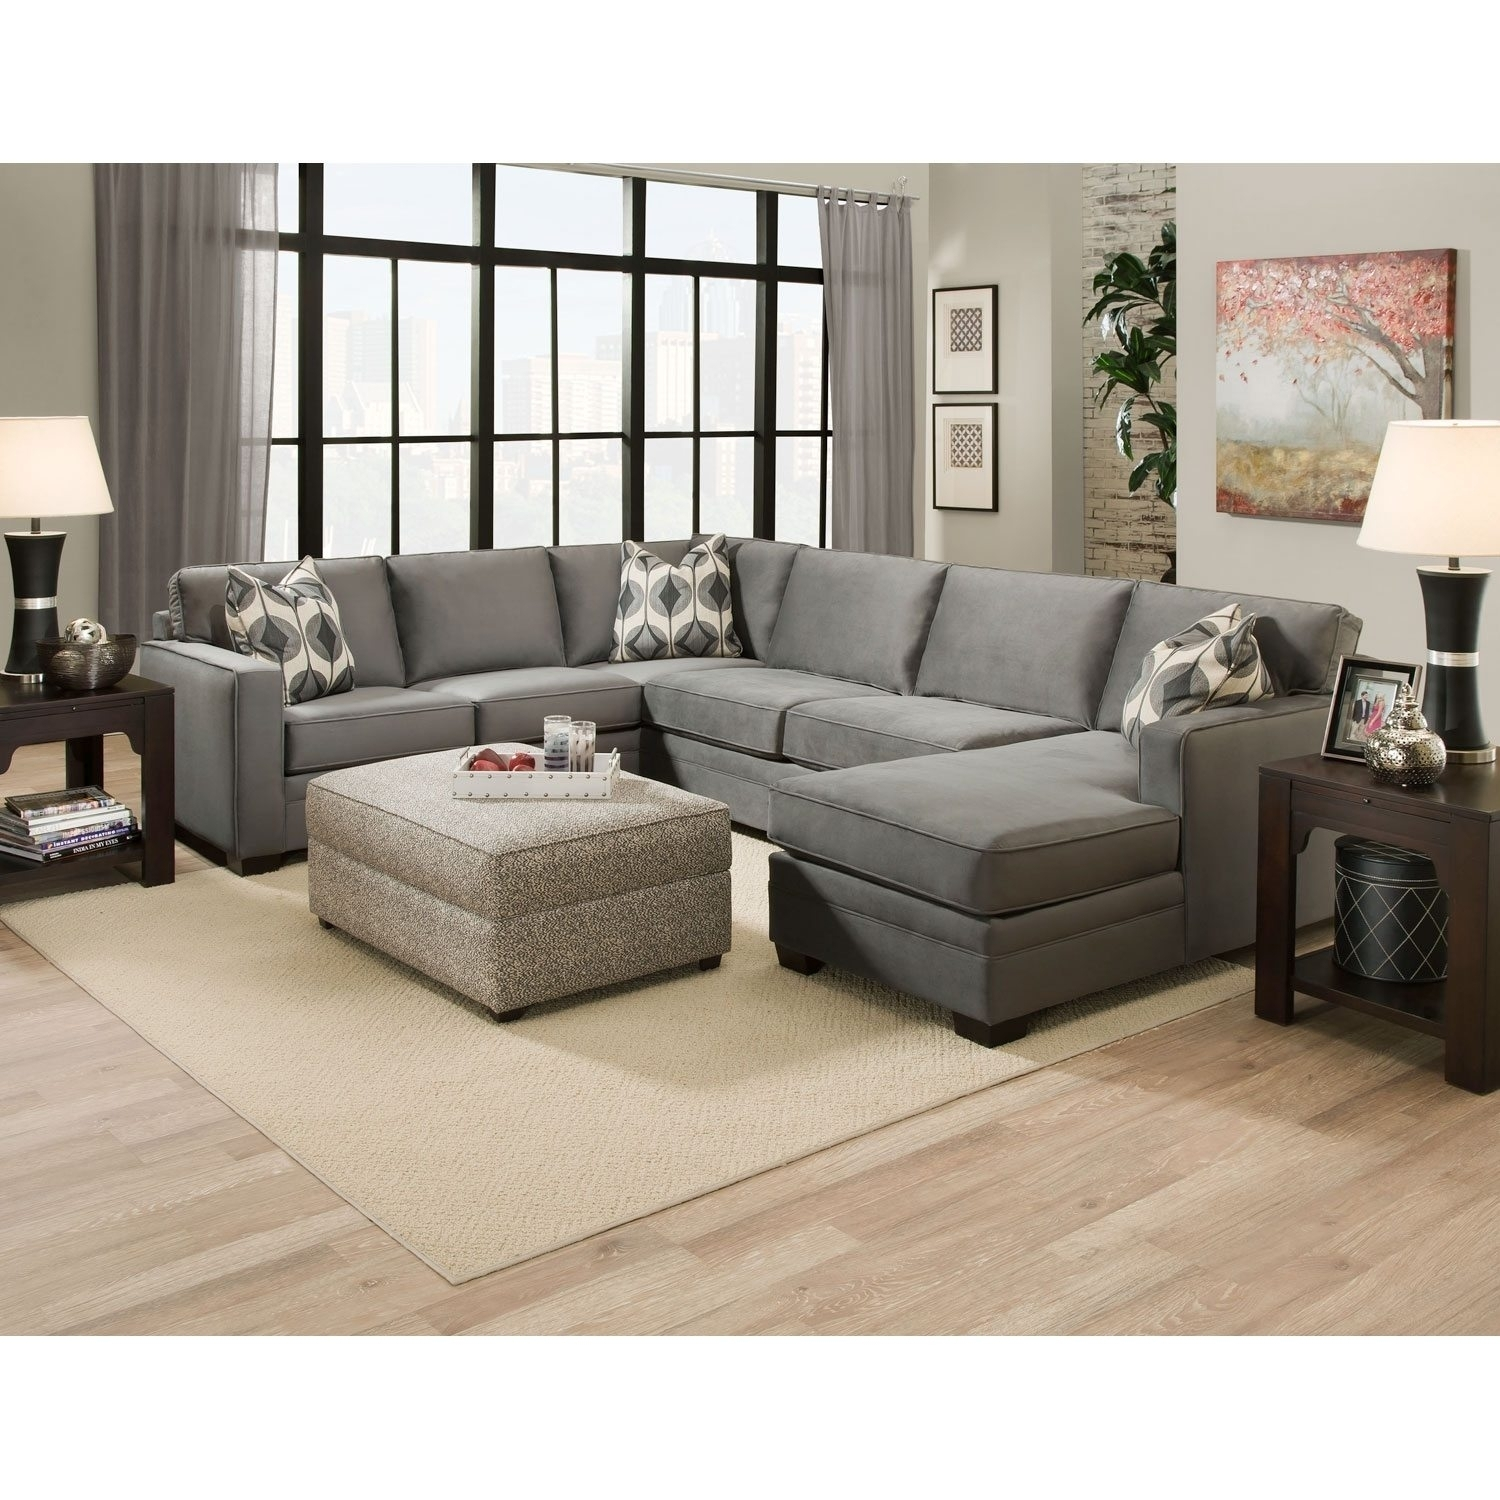 lane leather sofa at sam s sleeper sofas orange county 10 collection of sectional sam's club   ideas